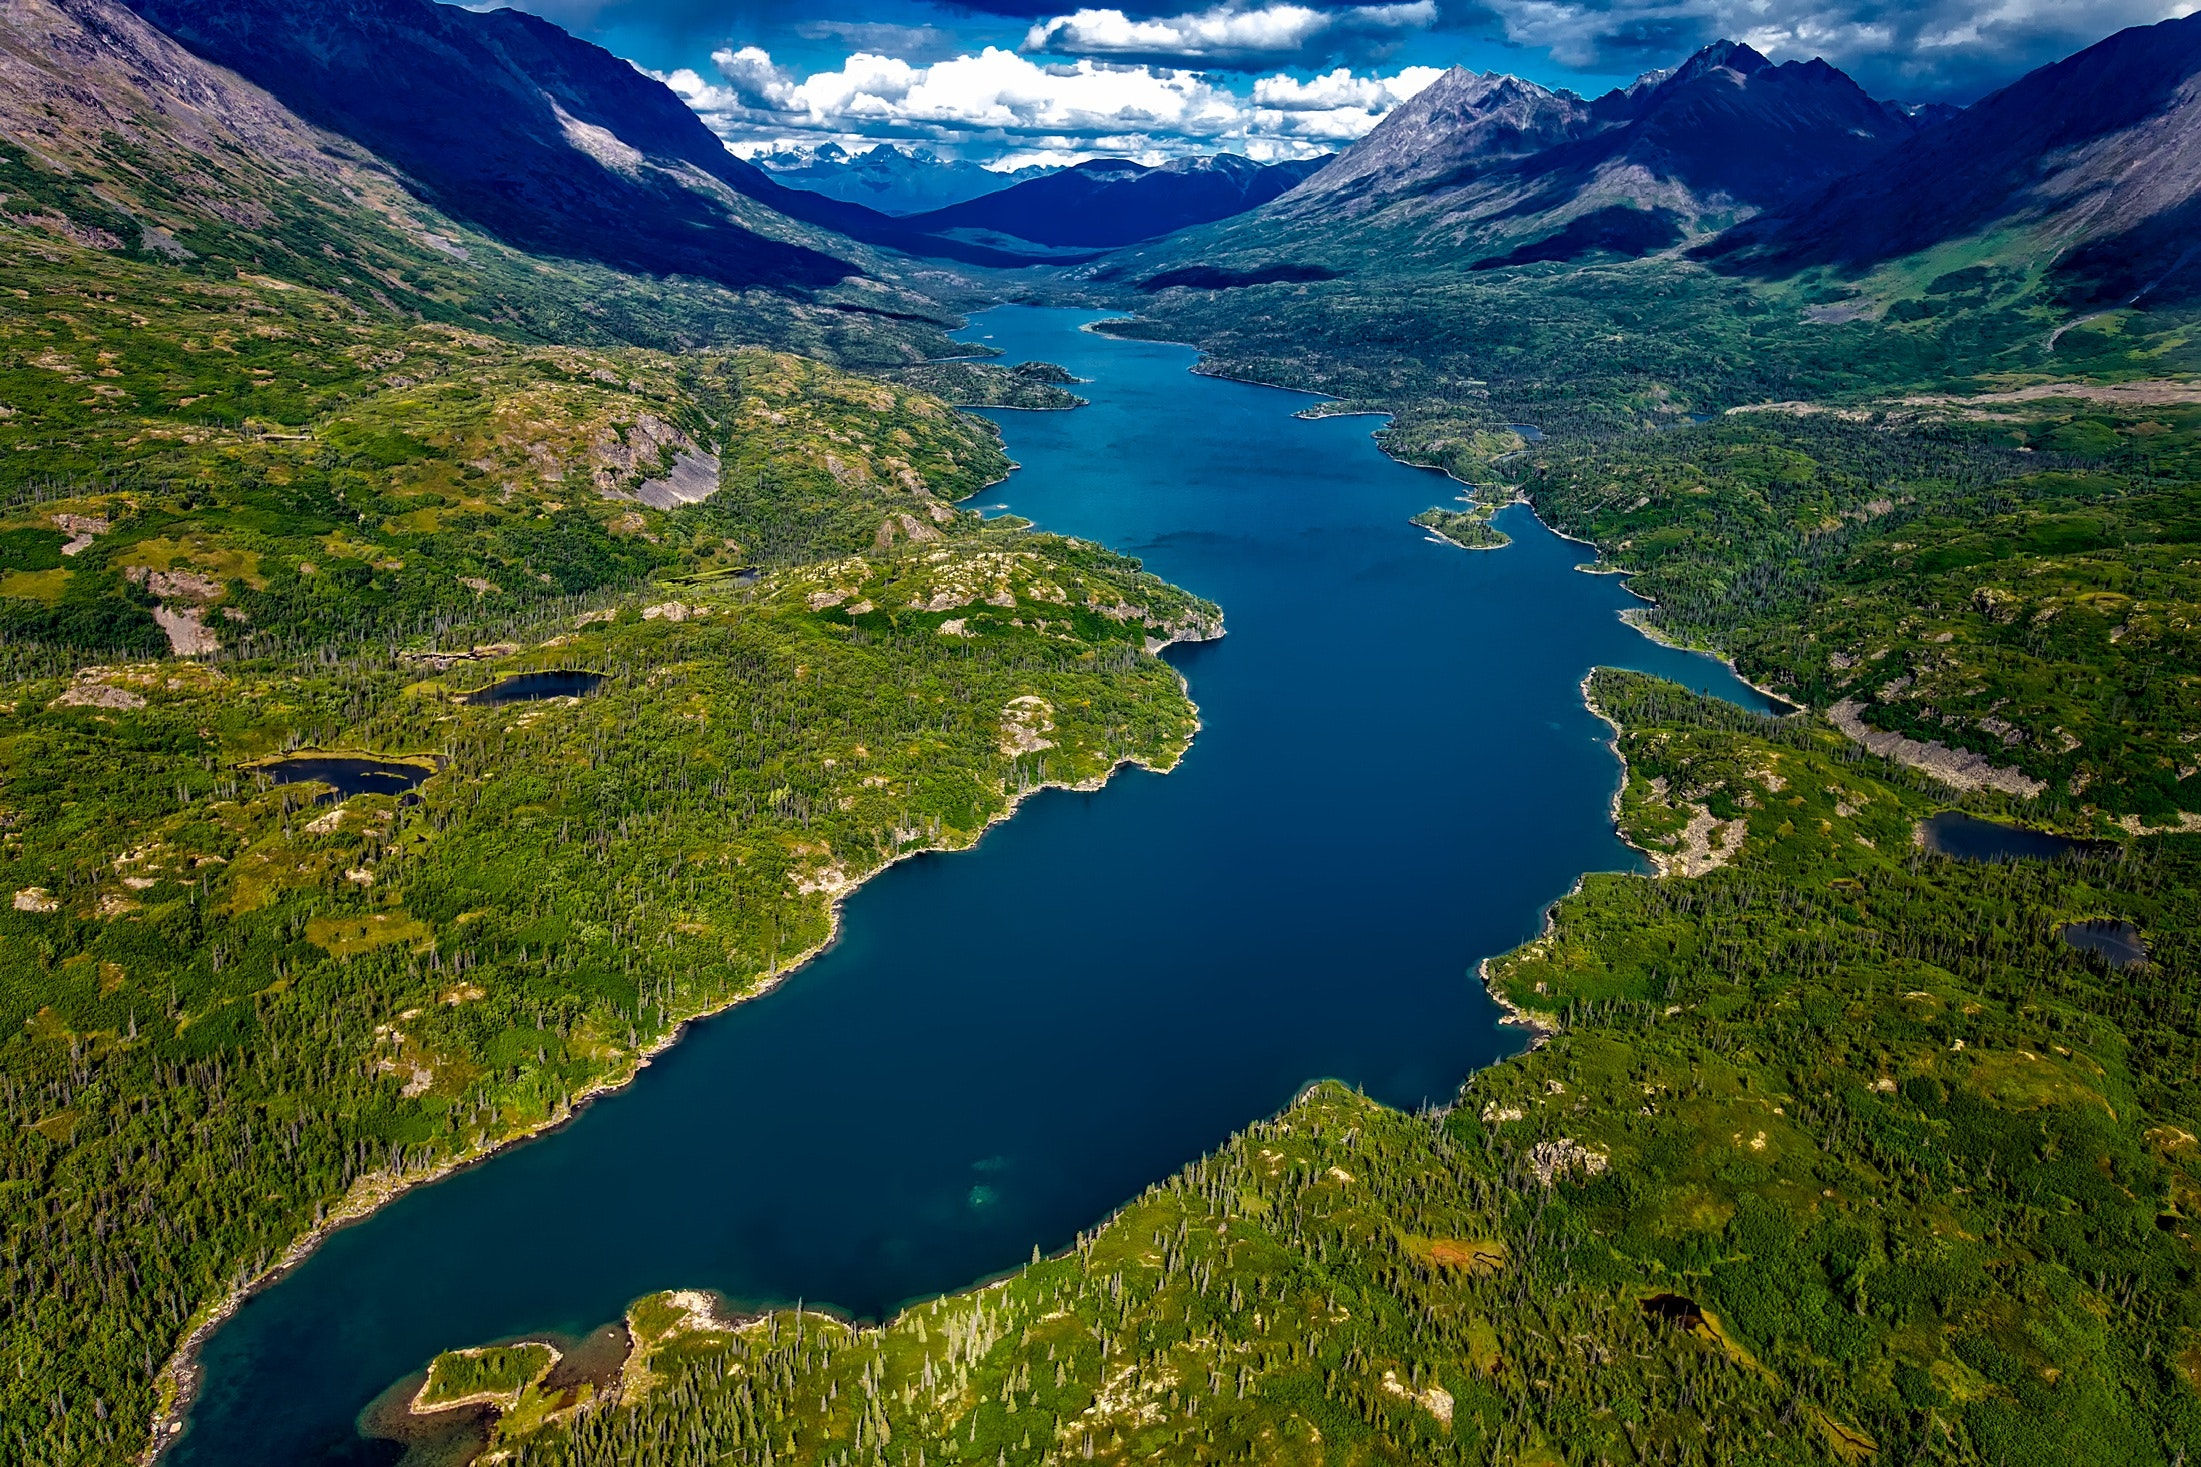 Aerial View Photography of River · Free Stock Photo